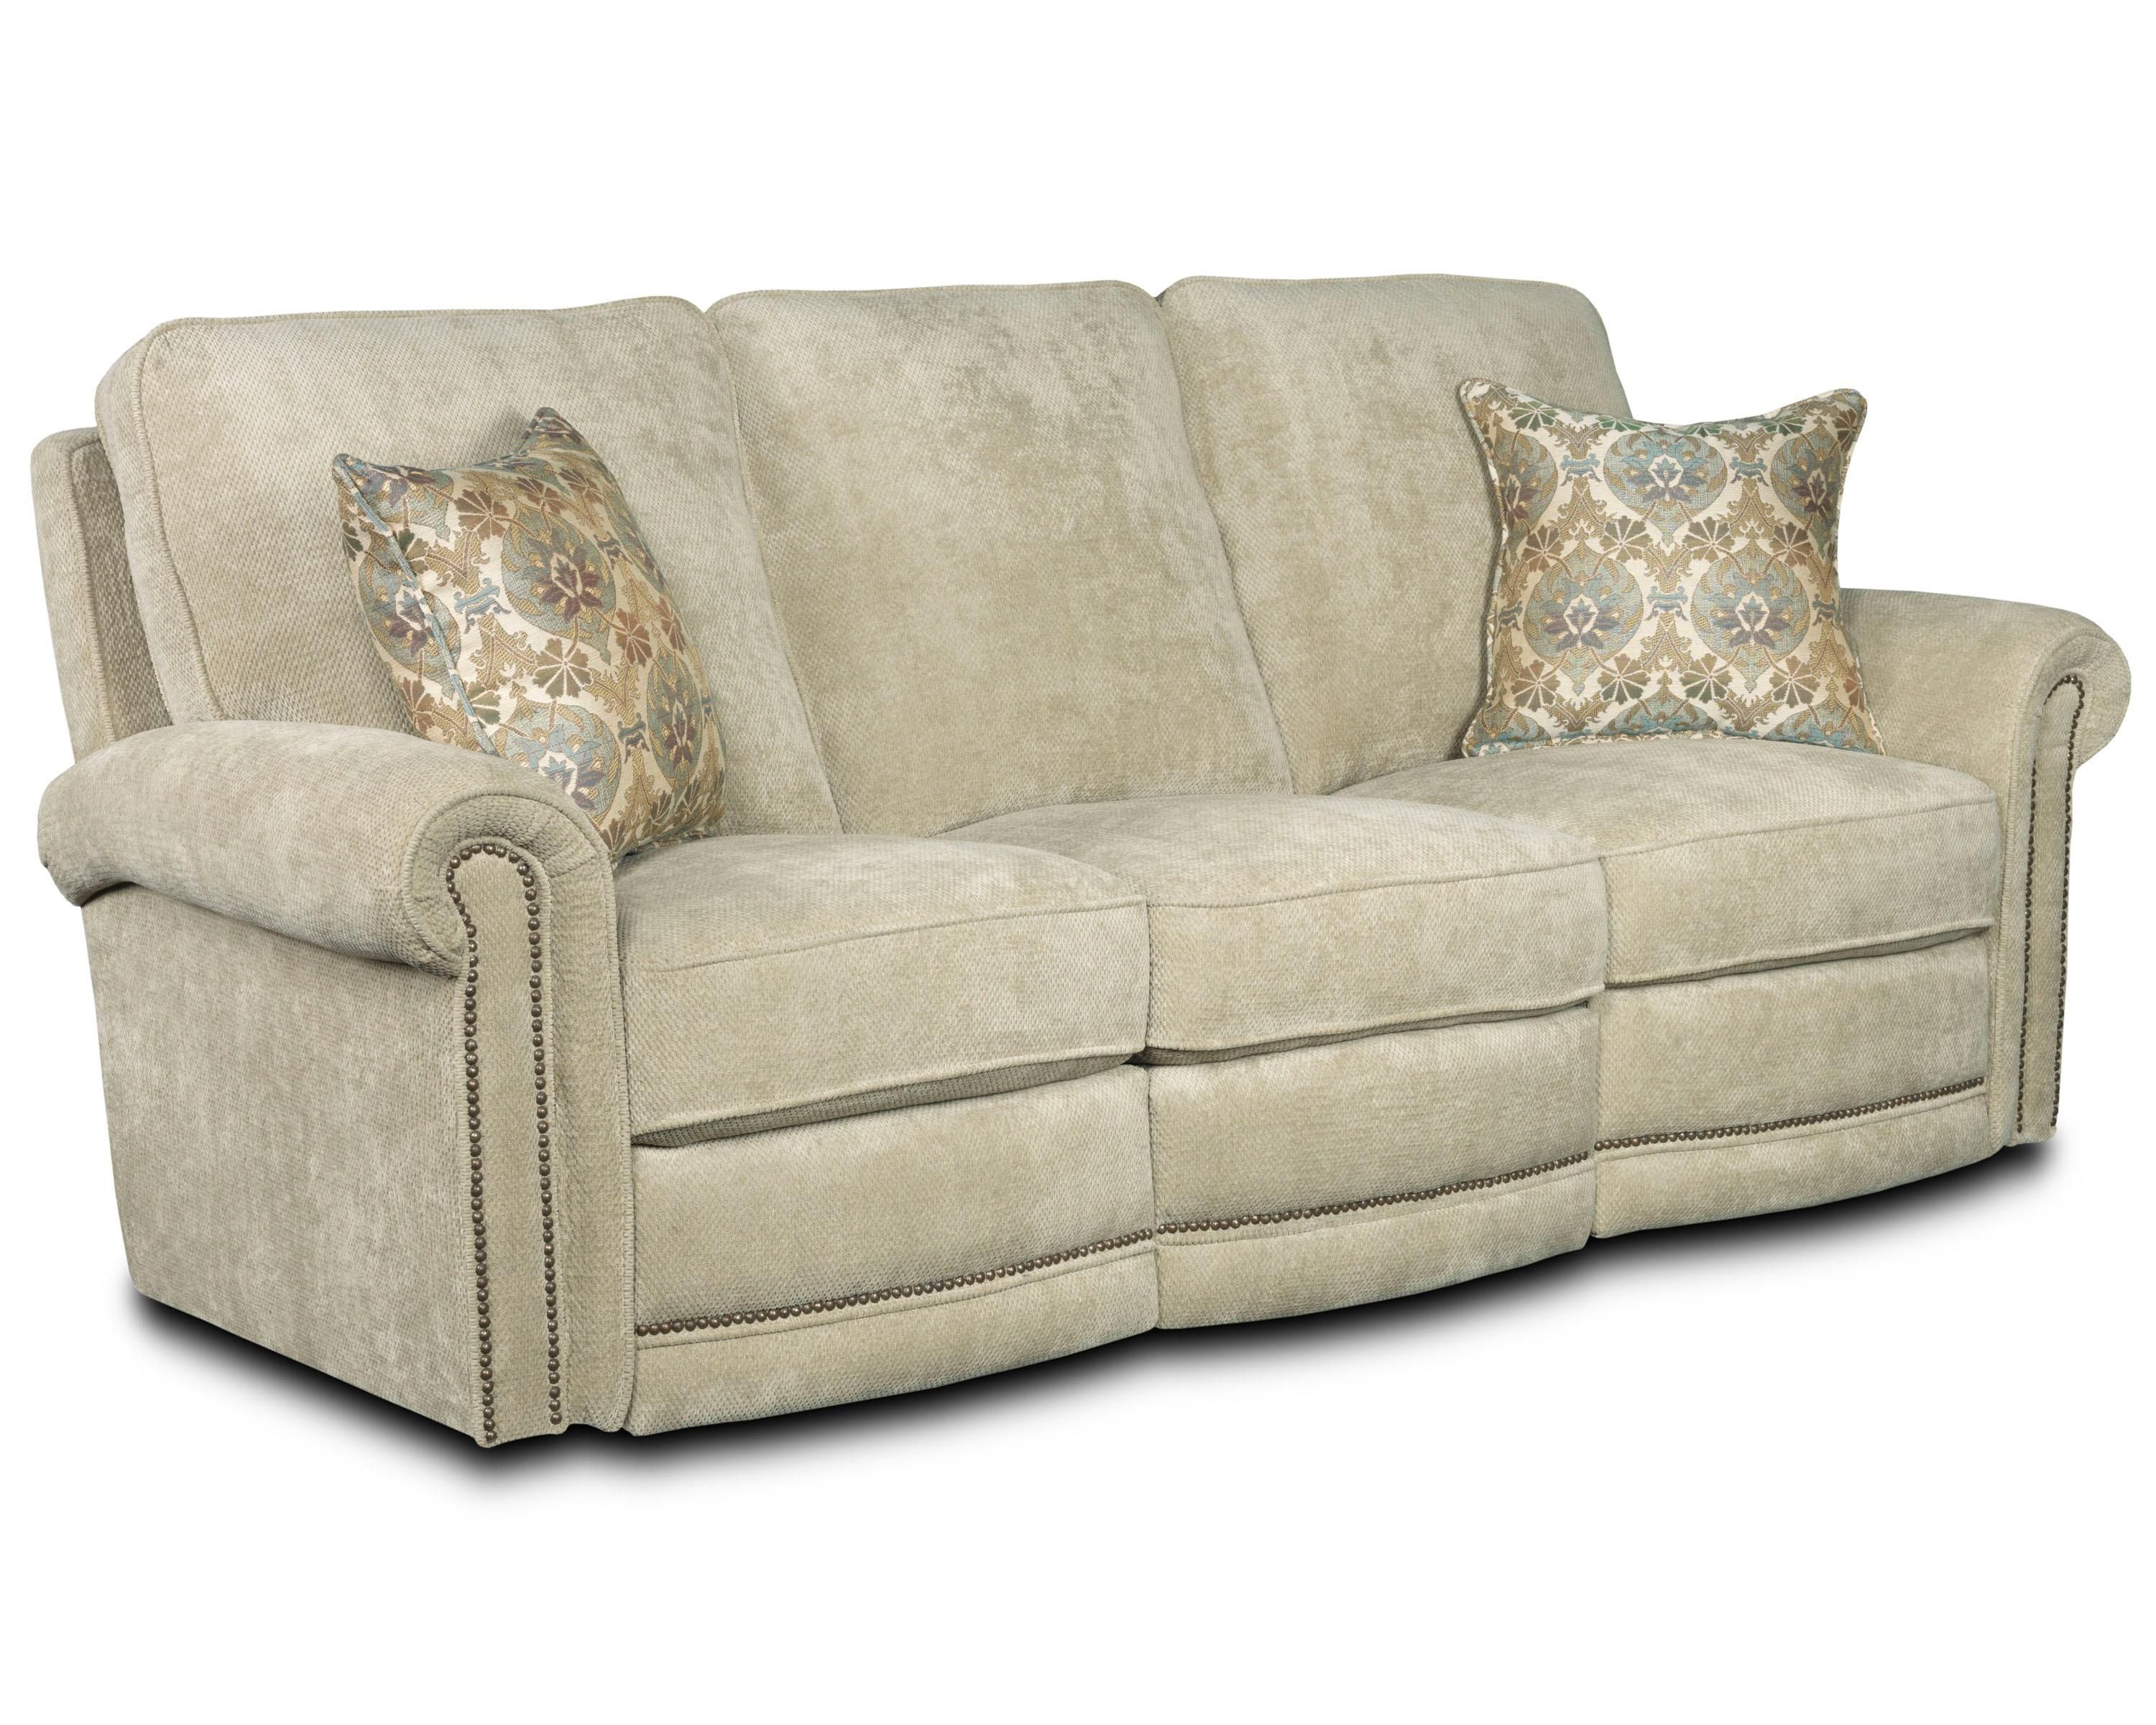 Jasmine Power Reclining Sofa by Broyhill Furniture